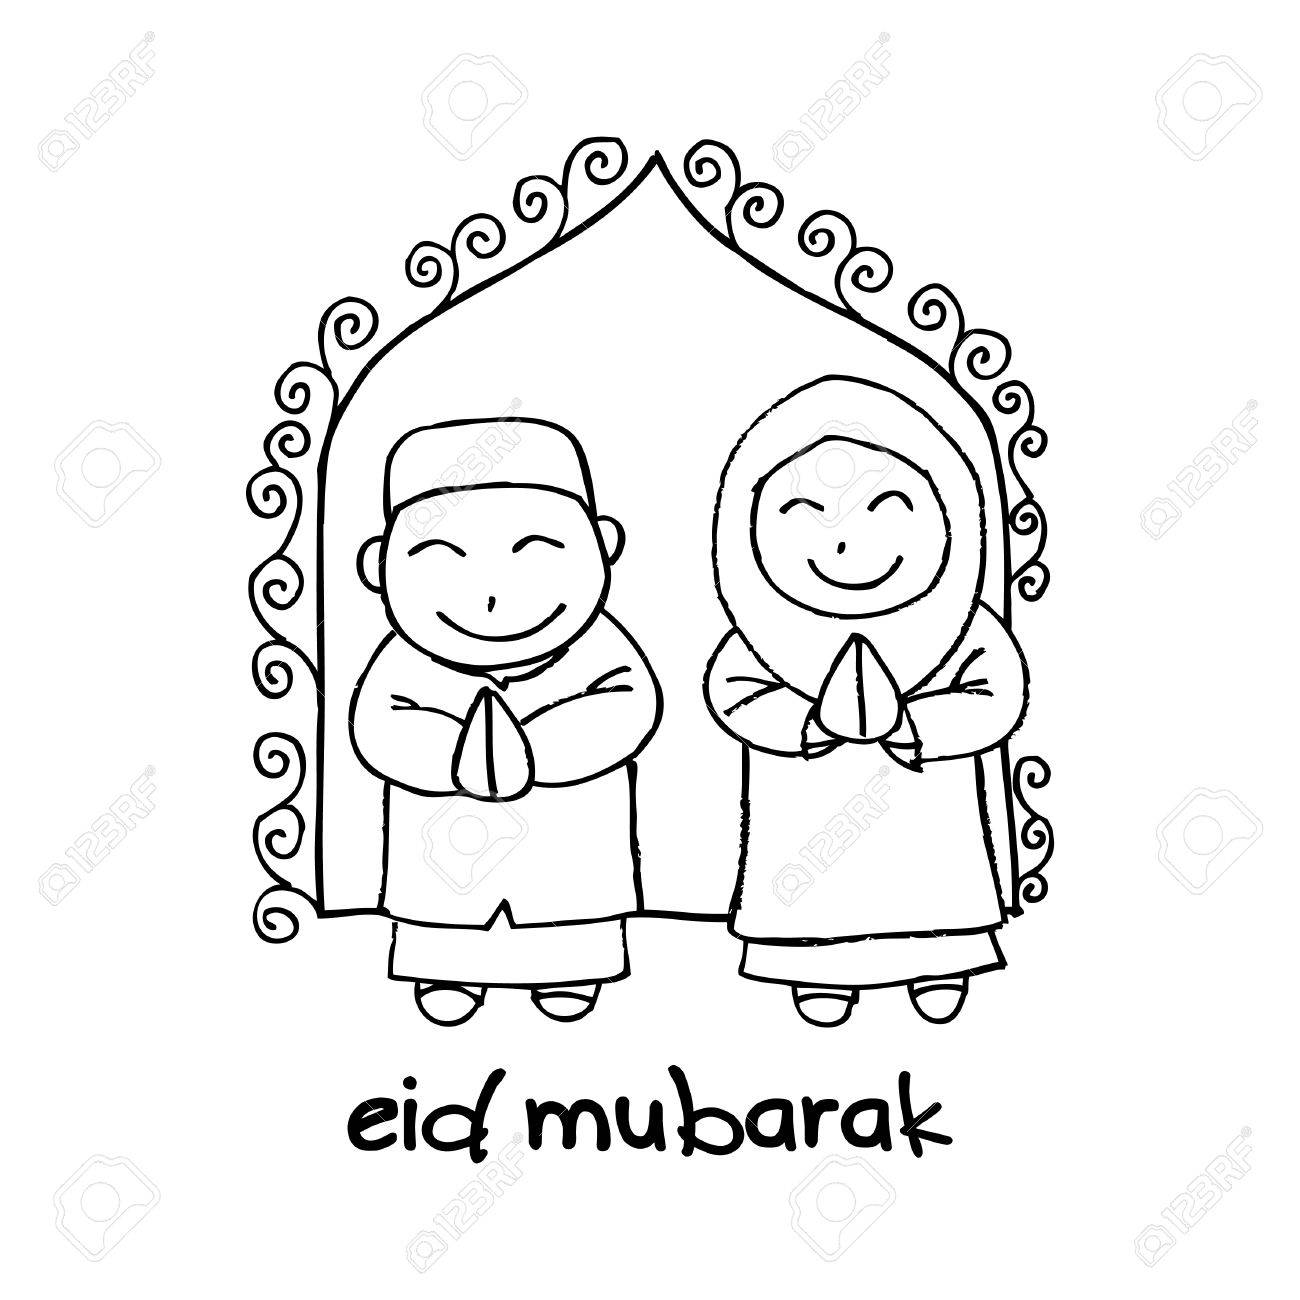 Eid mubarak greeting card with cute cartoon muslim..